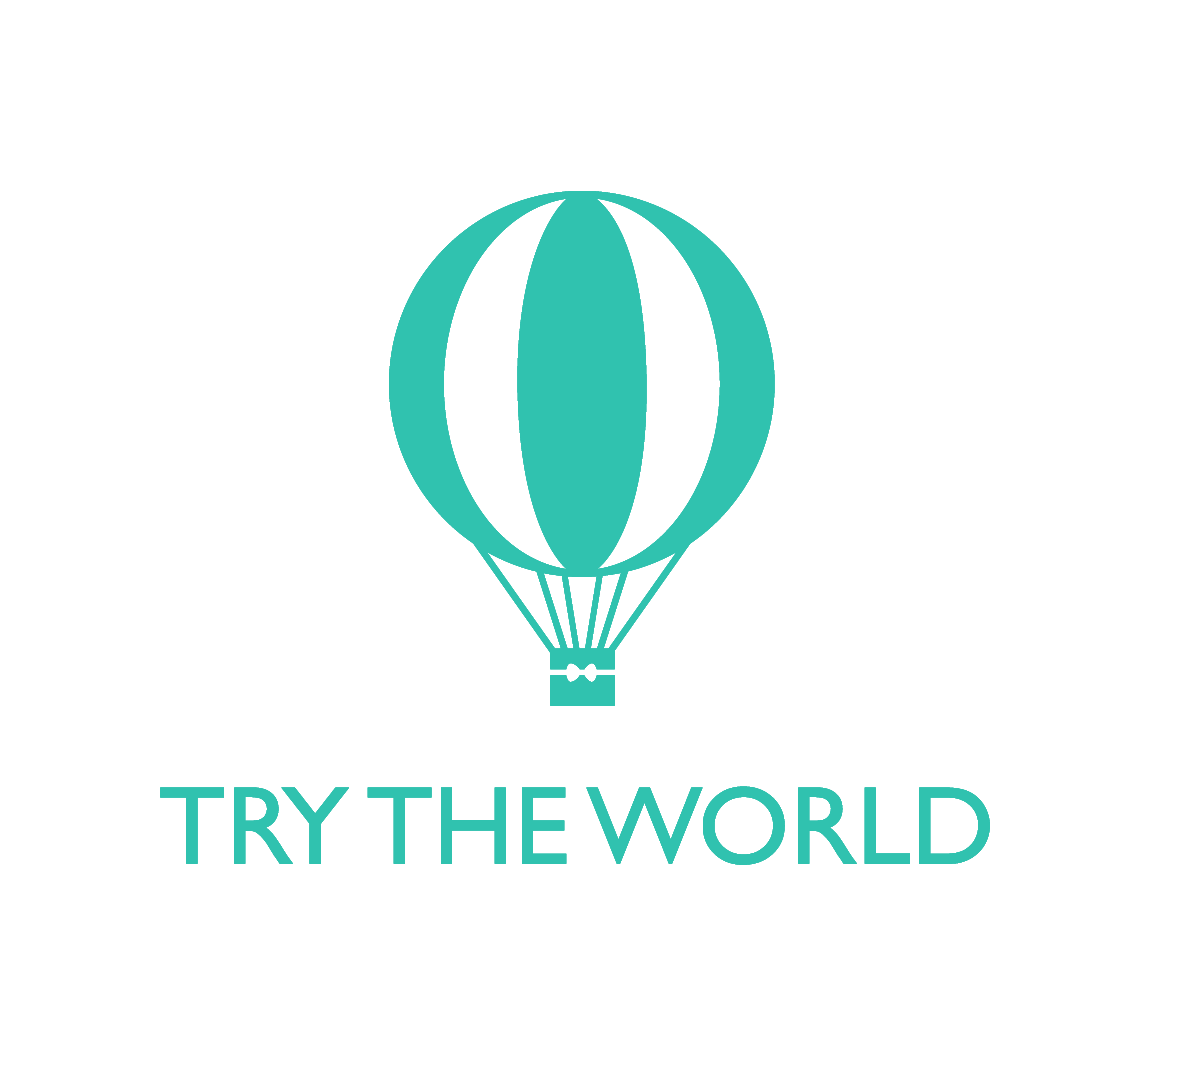 Charlesworth, Try The World